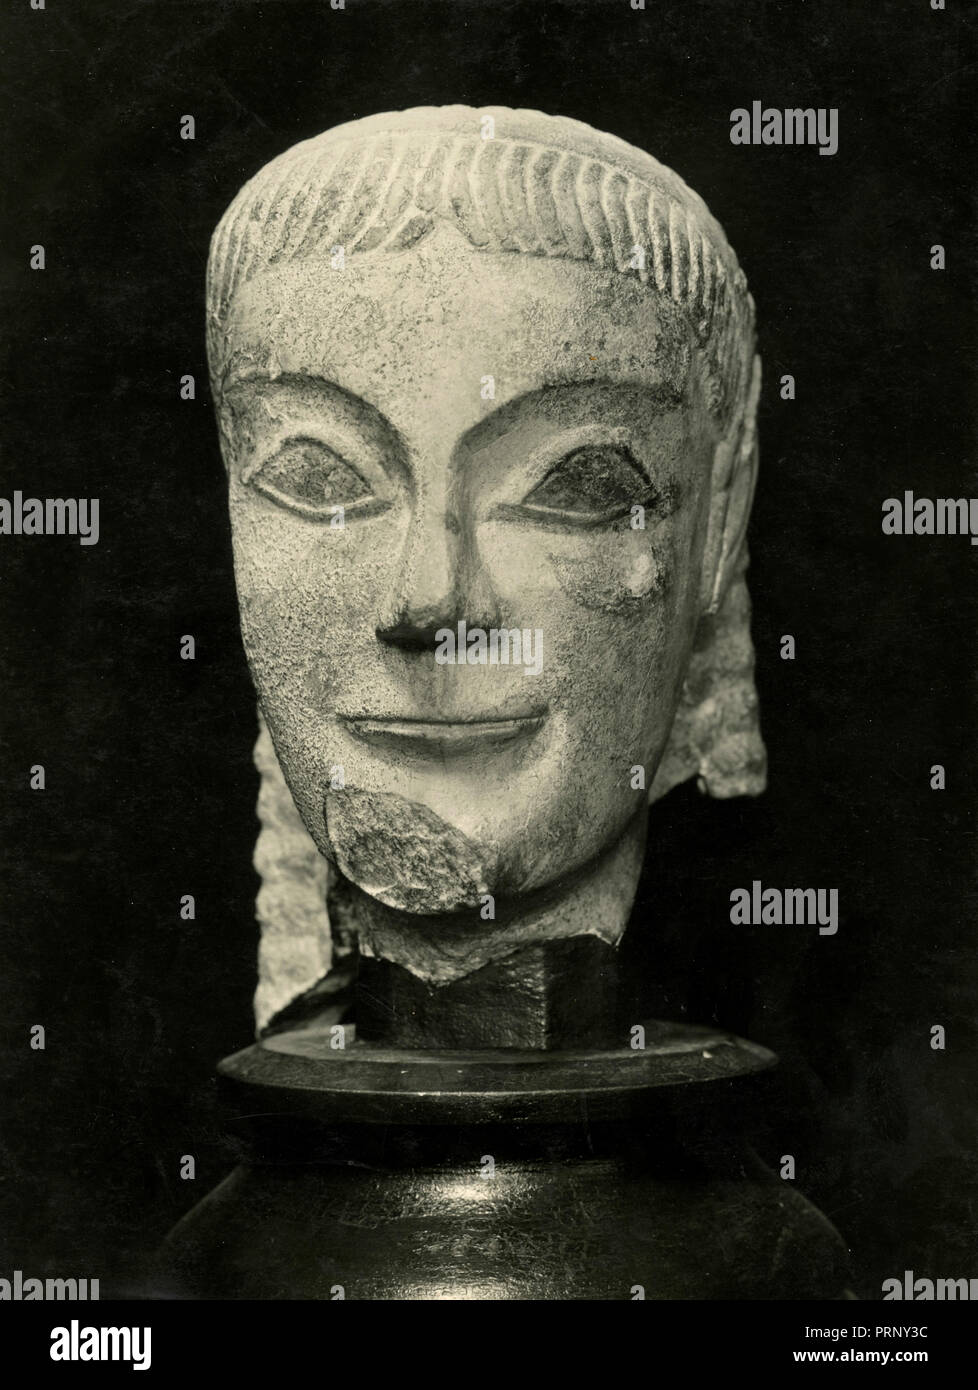 Archaic marble head, Greece 1930s - Stock Image